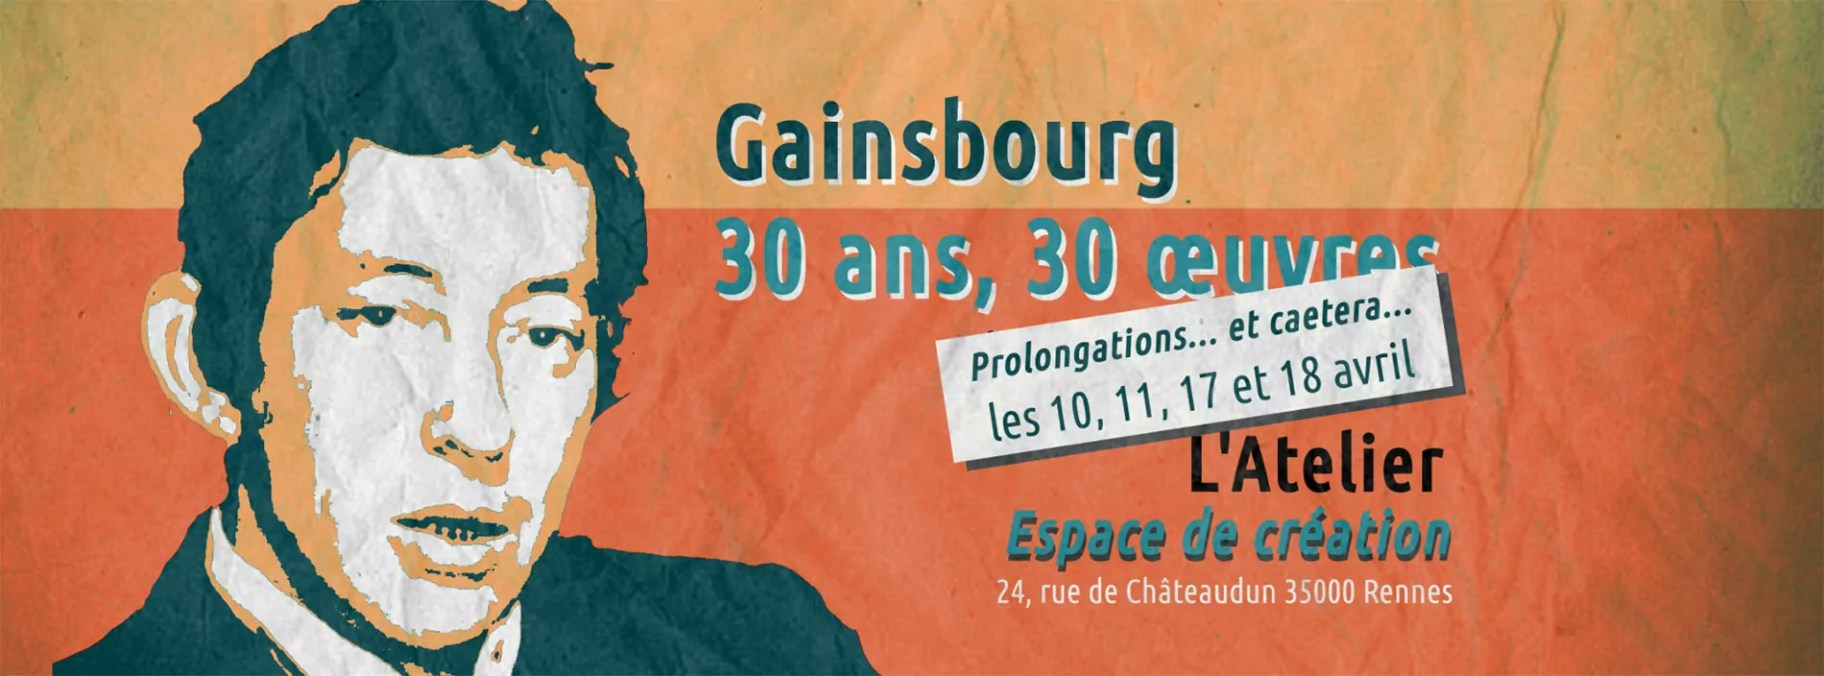 expos gainsbourg 30 ans 30 oeuvres